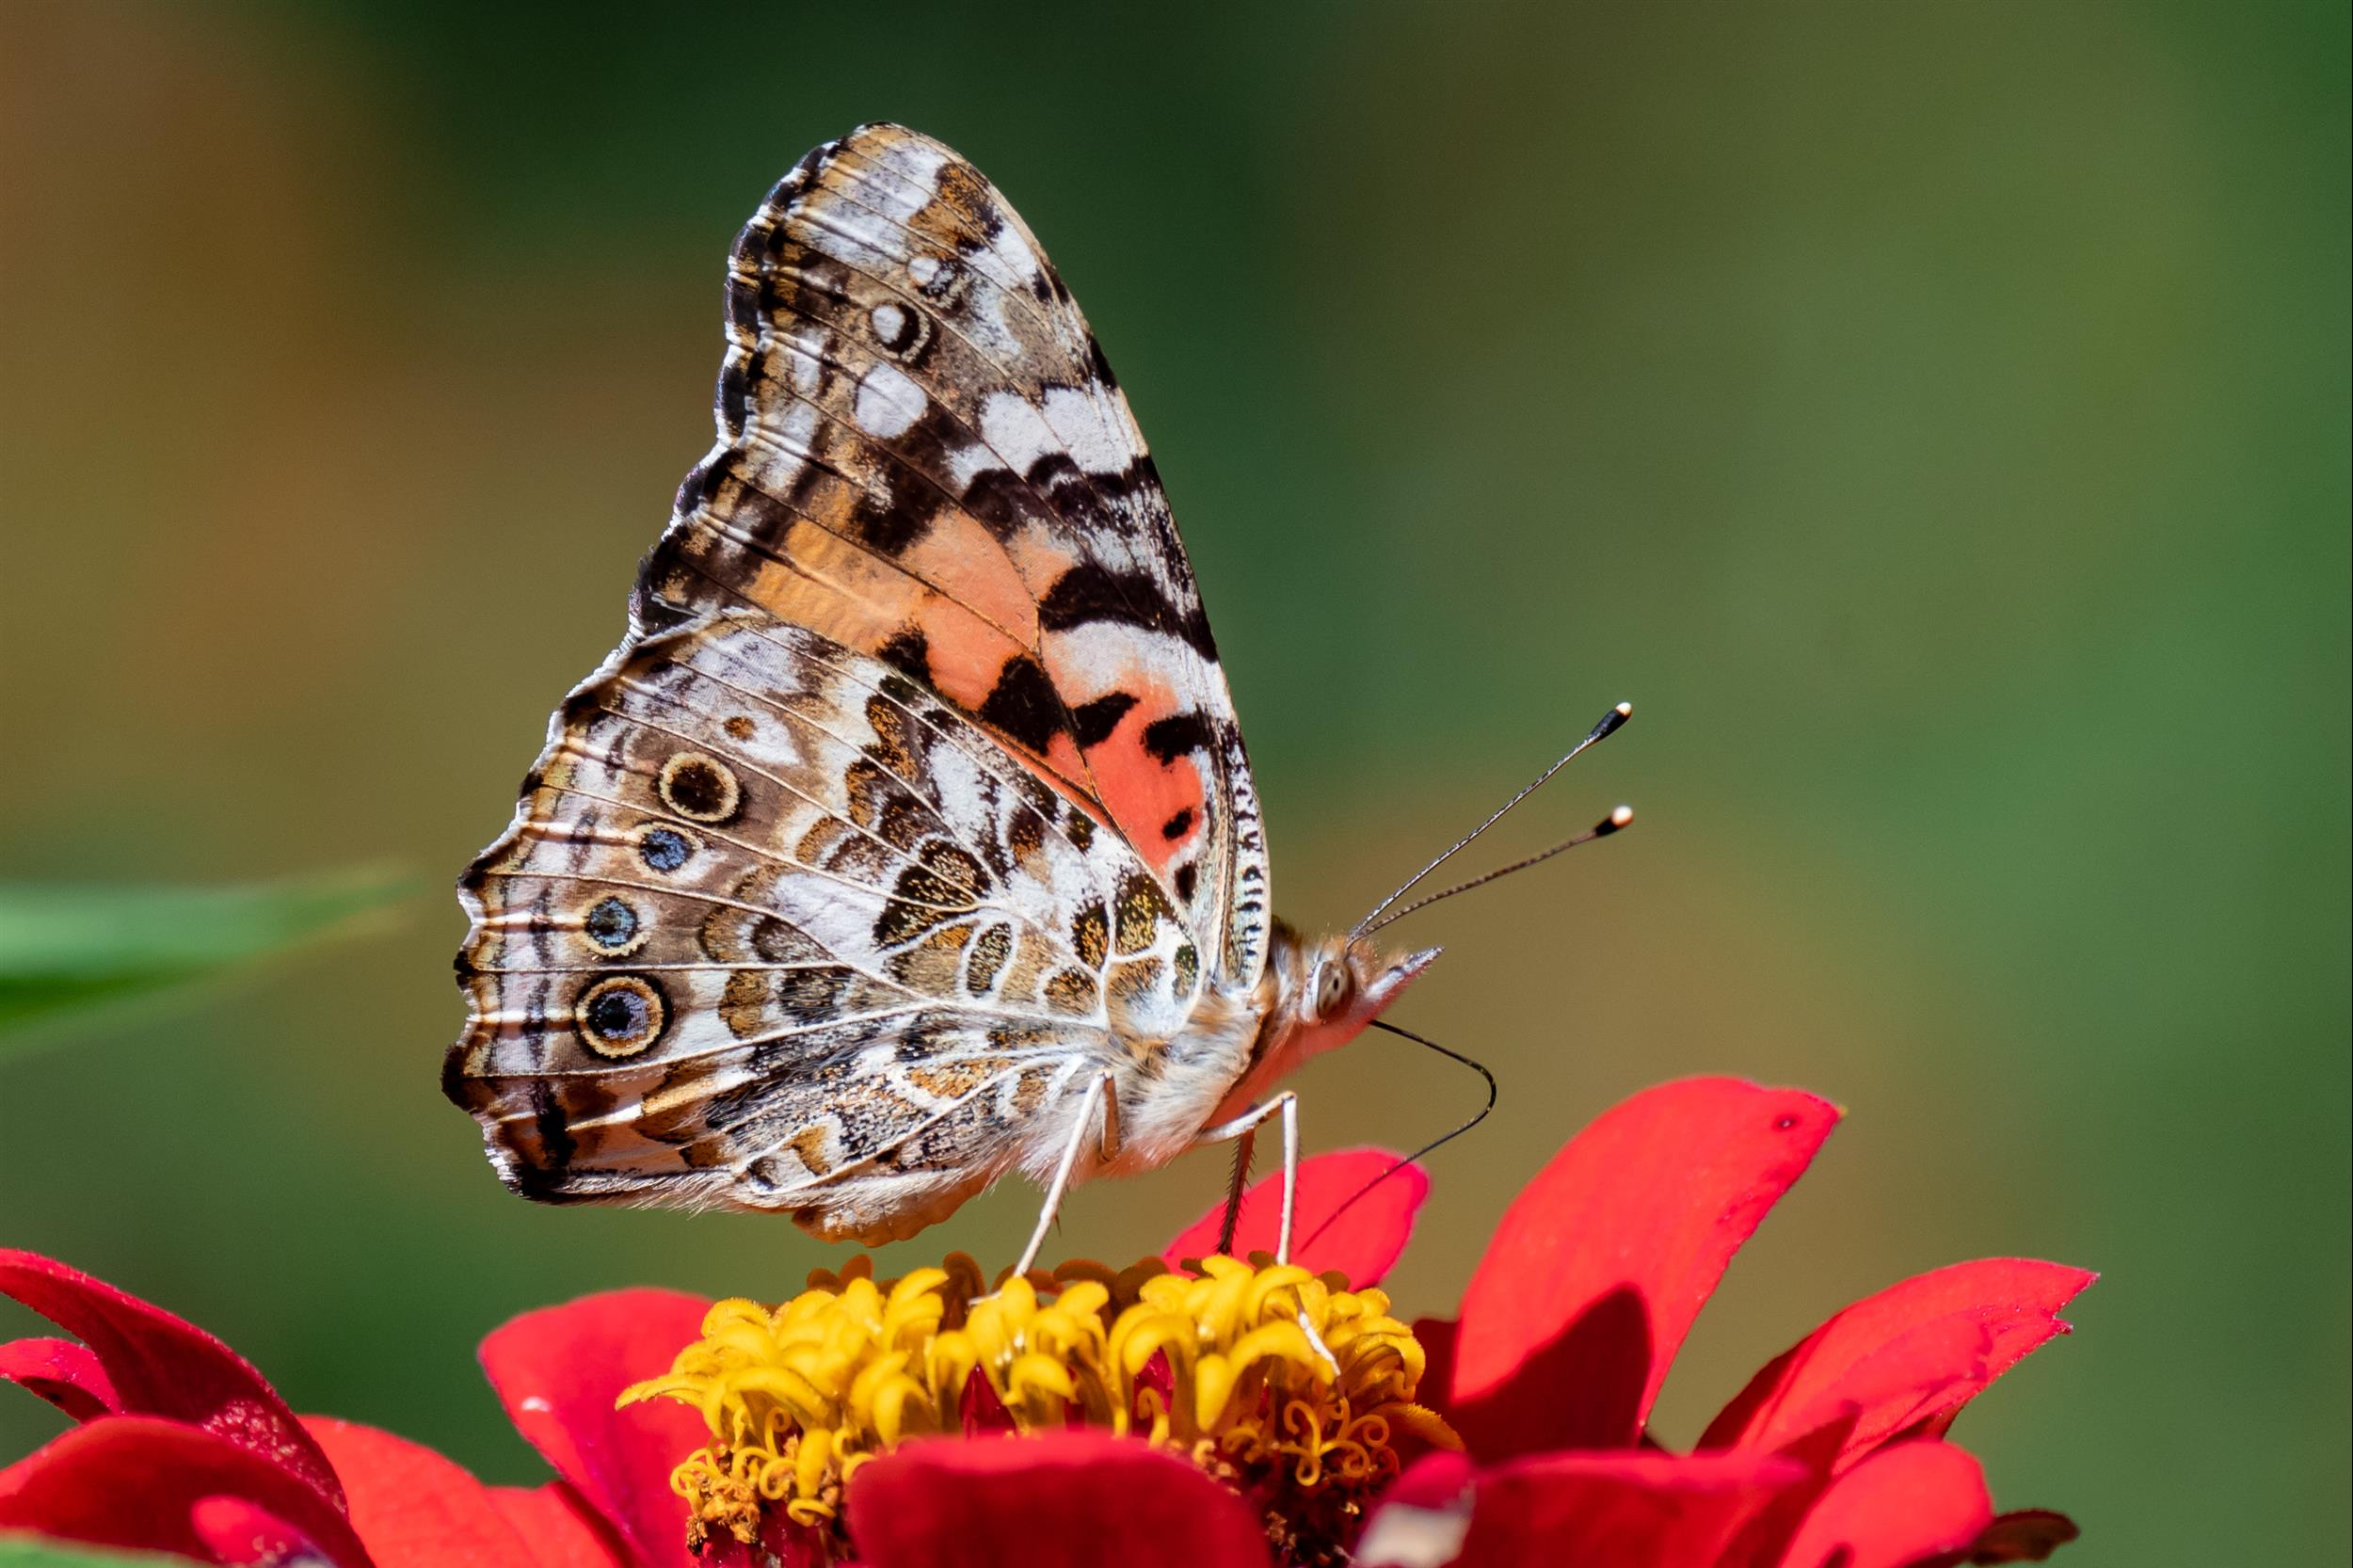 butterfly-on-red-flower.jpg